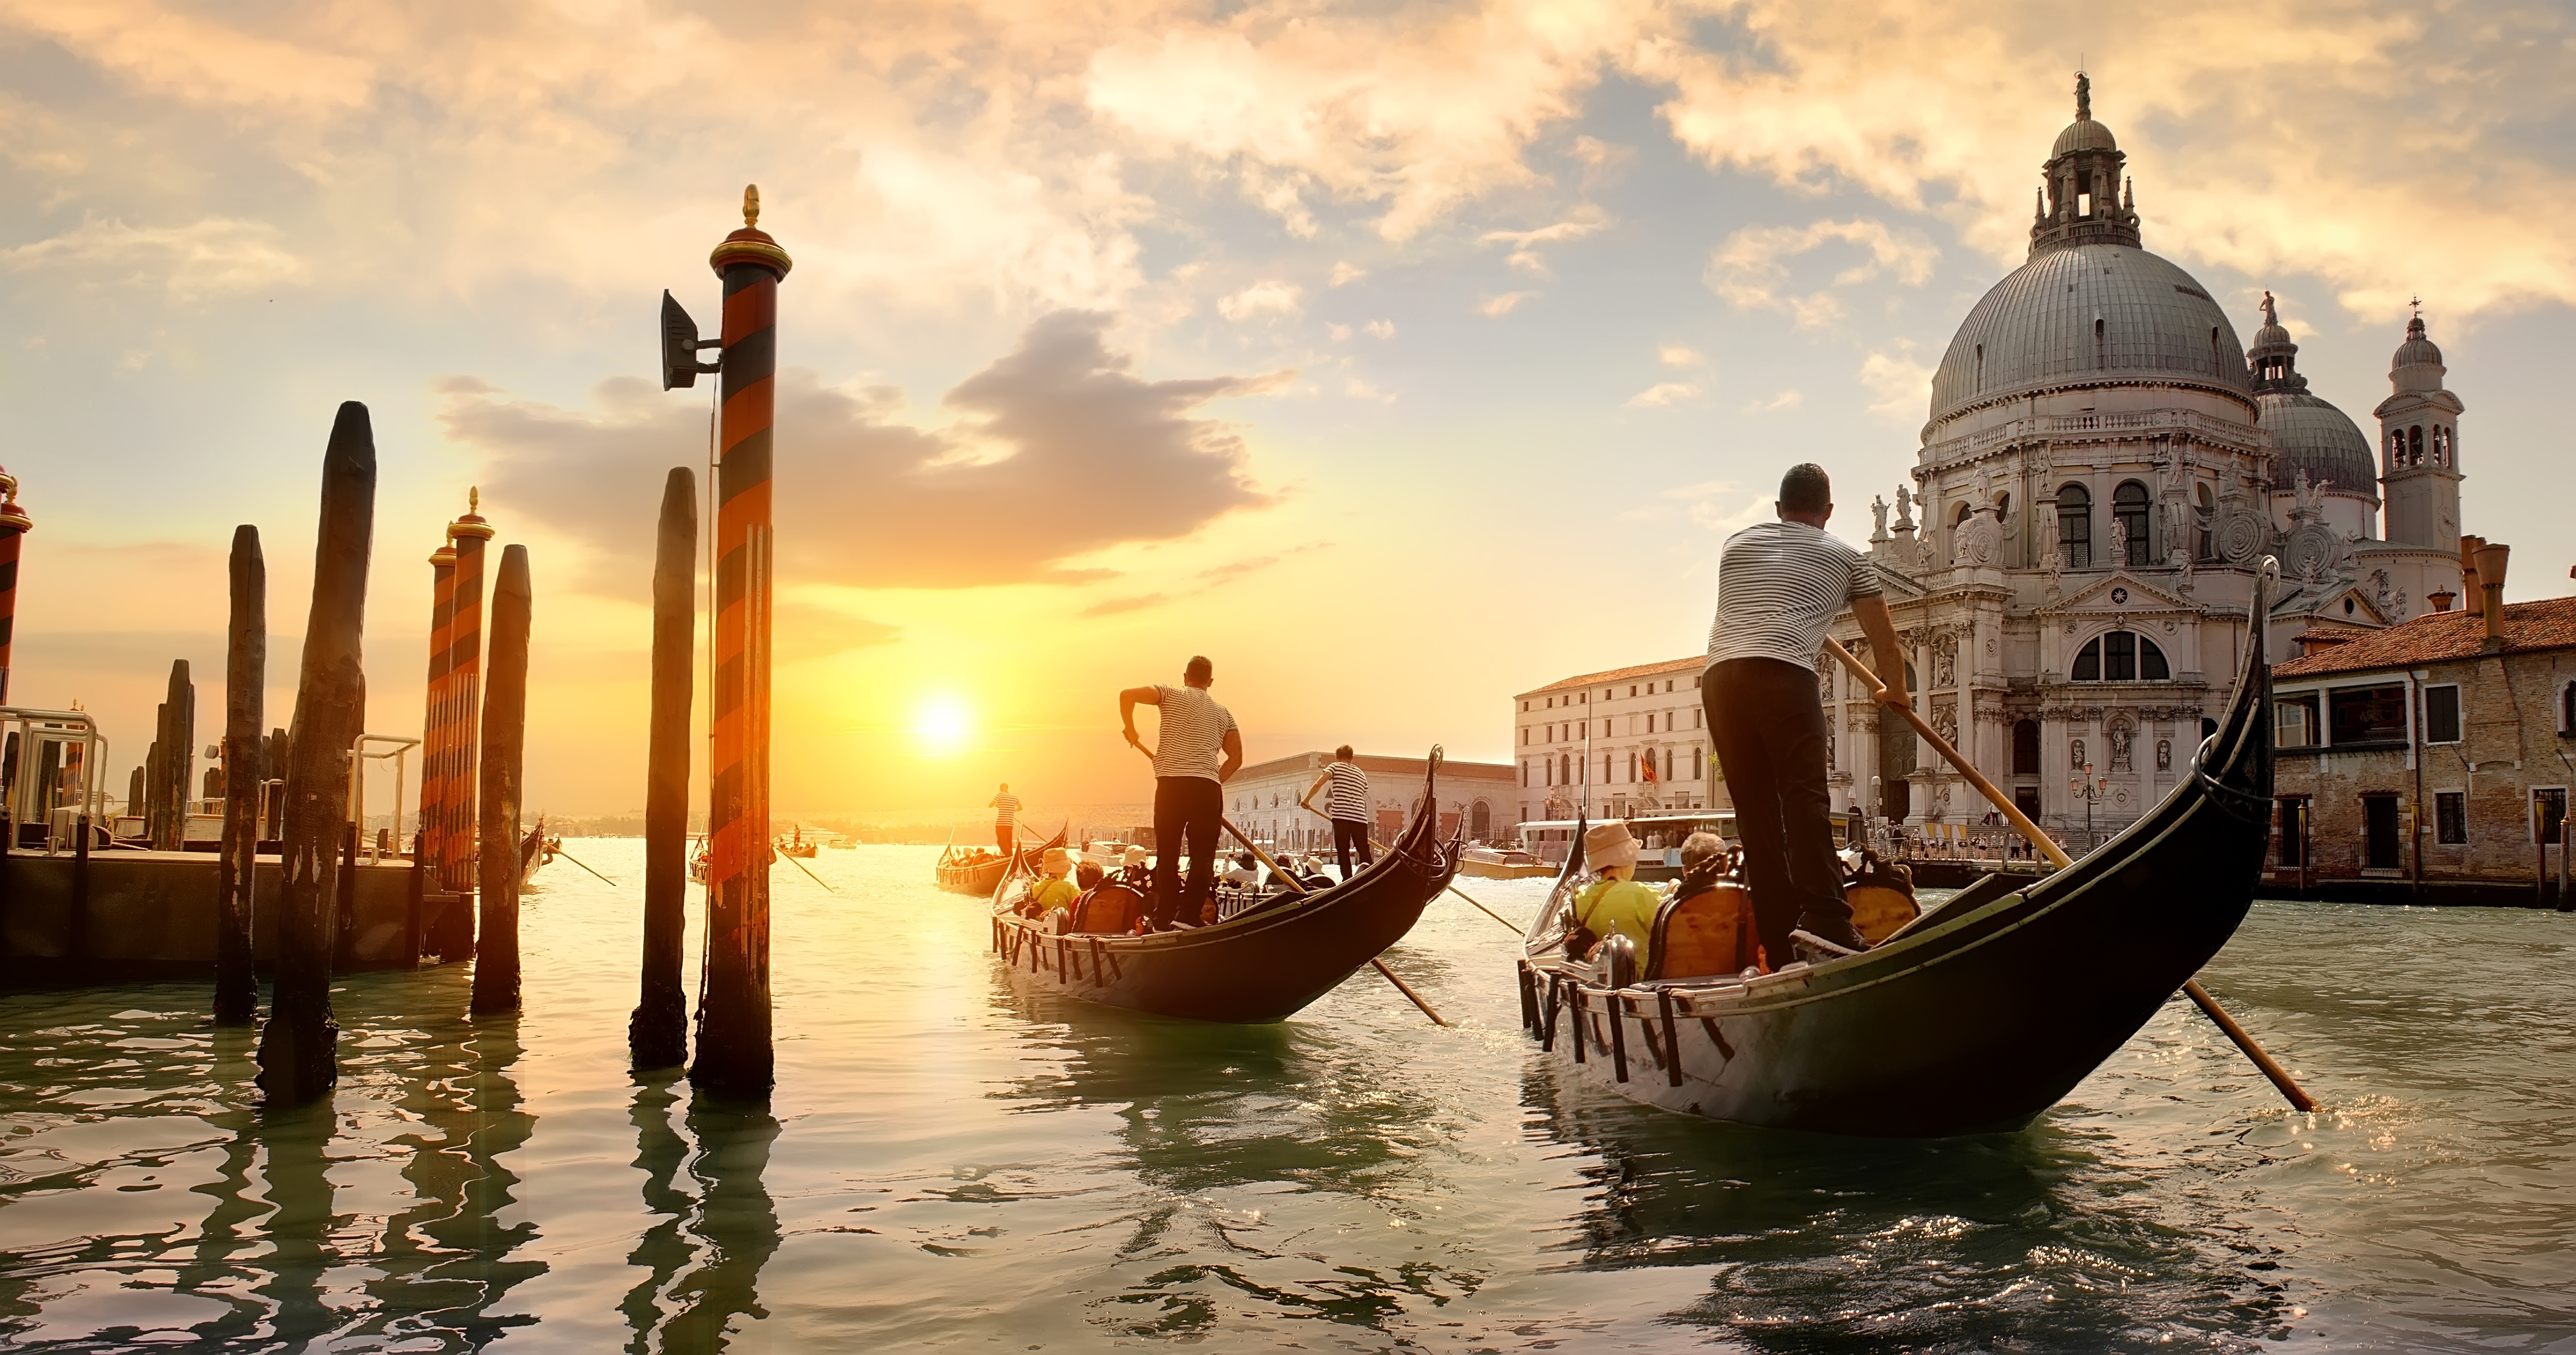 33 things to see and do in Venice